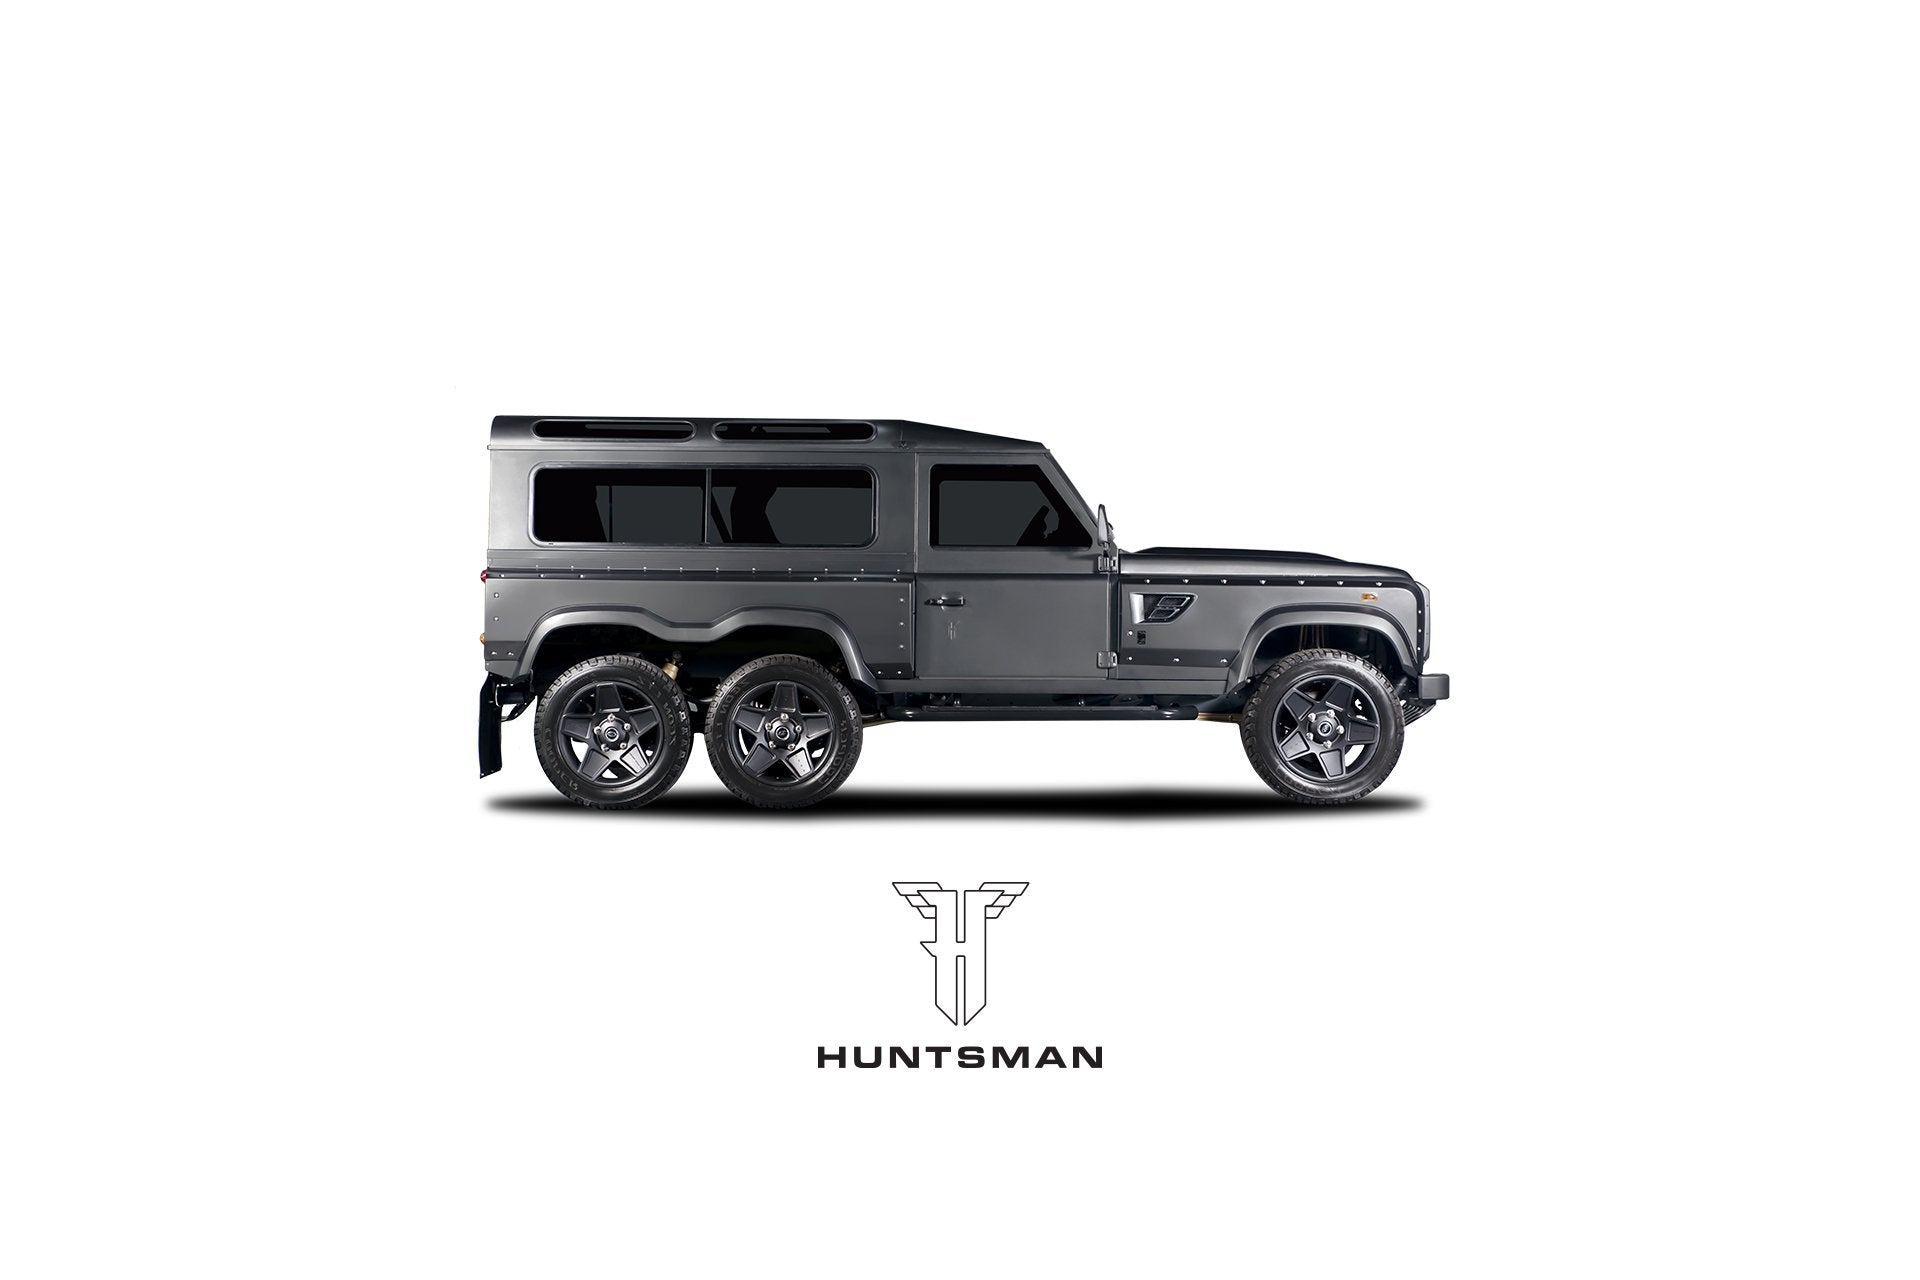 The Flying Huntsman 6 X 6 Longnose by Kahn - Image 56